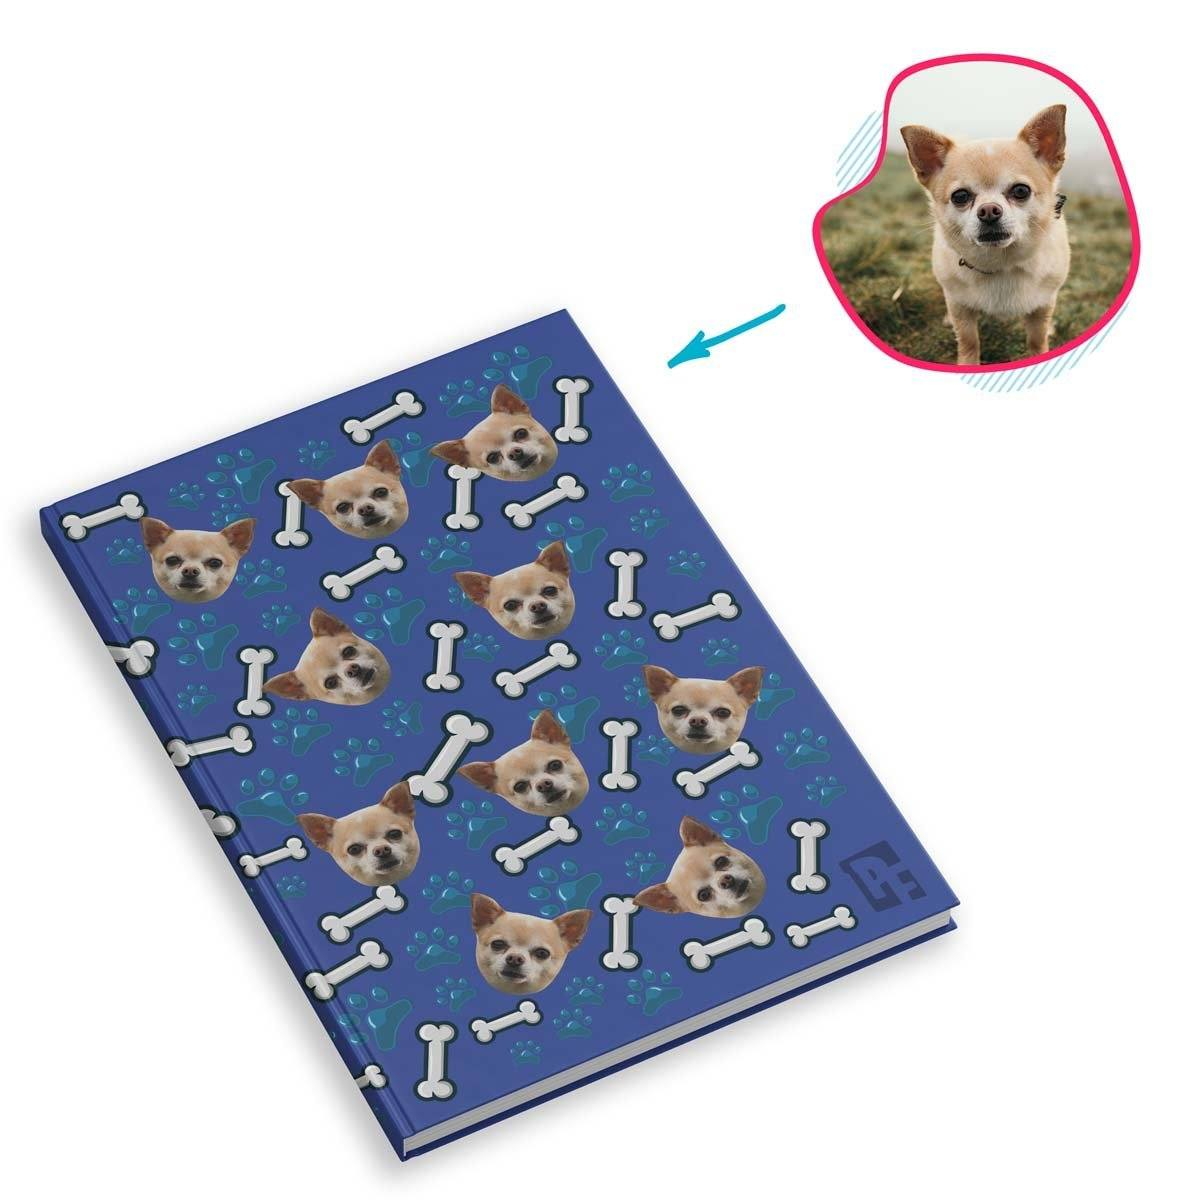 darkblue Dog Notebook personalized with photo of face printed on them